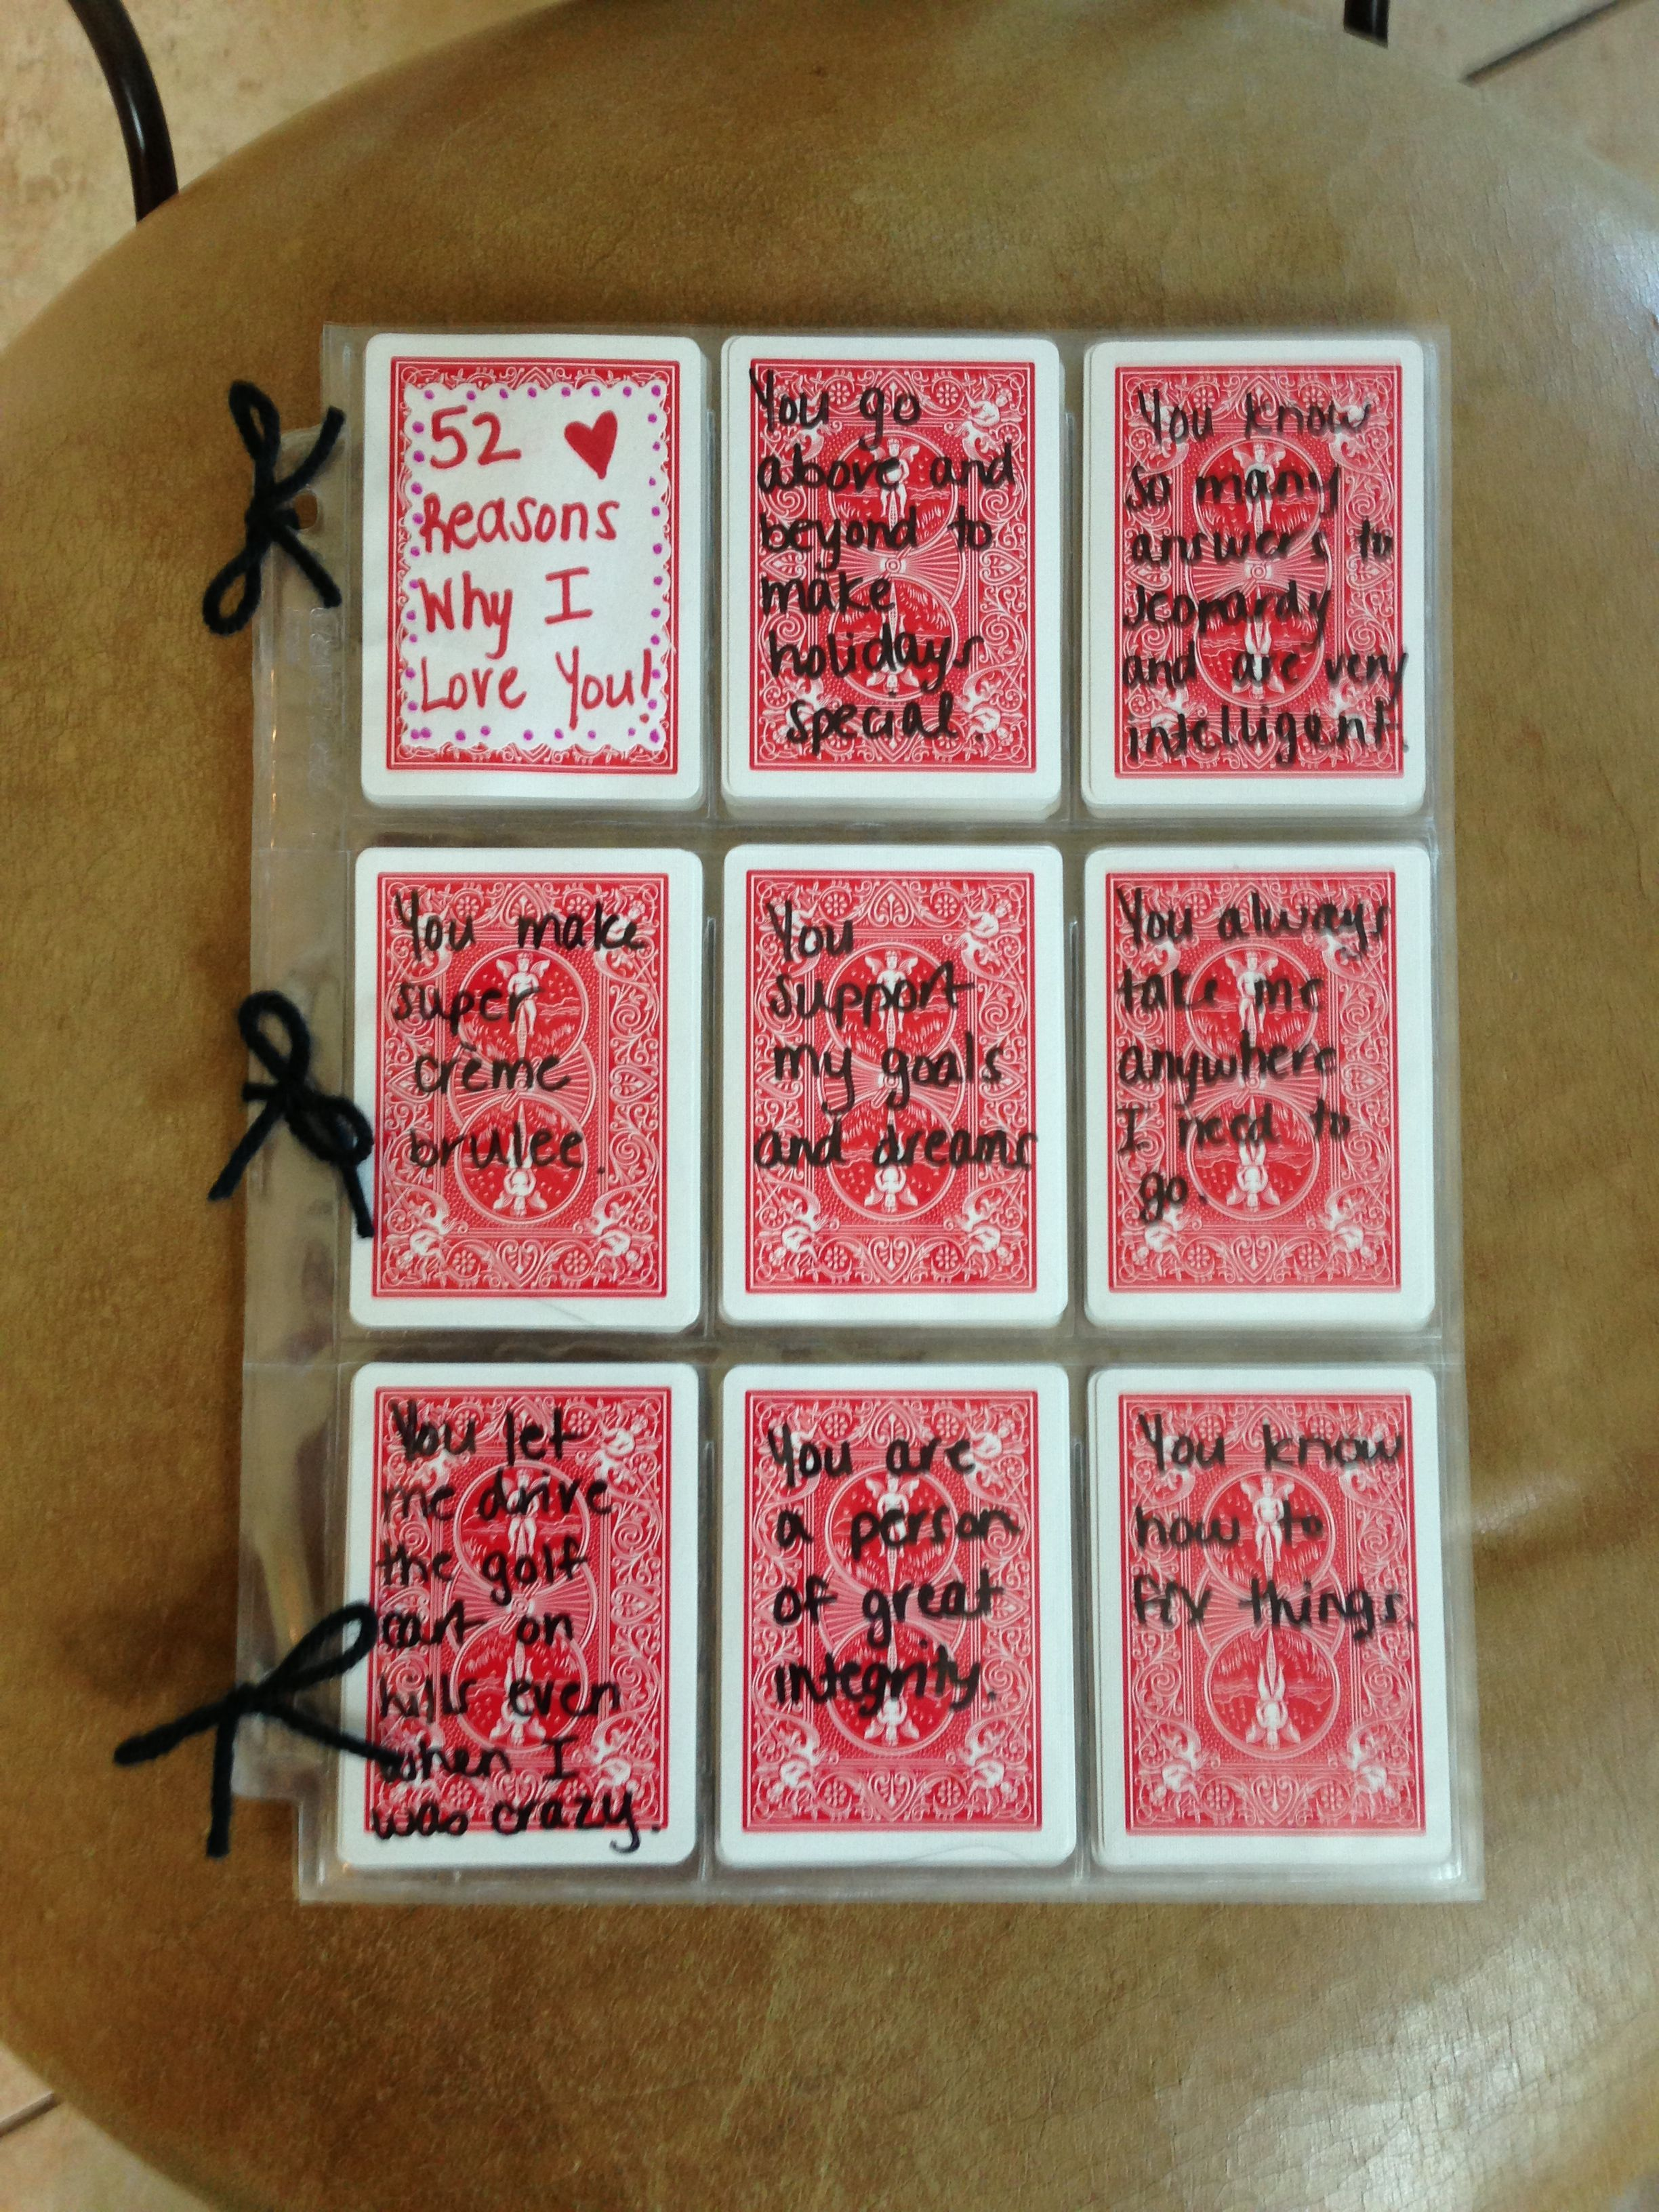 002 Astounding 52 Reason Why I Love You Deck Of Card Free Template Image Full